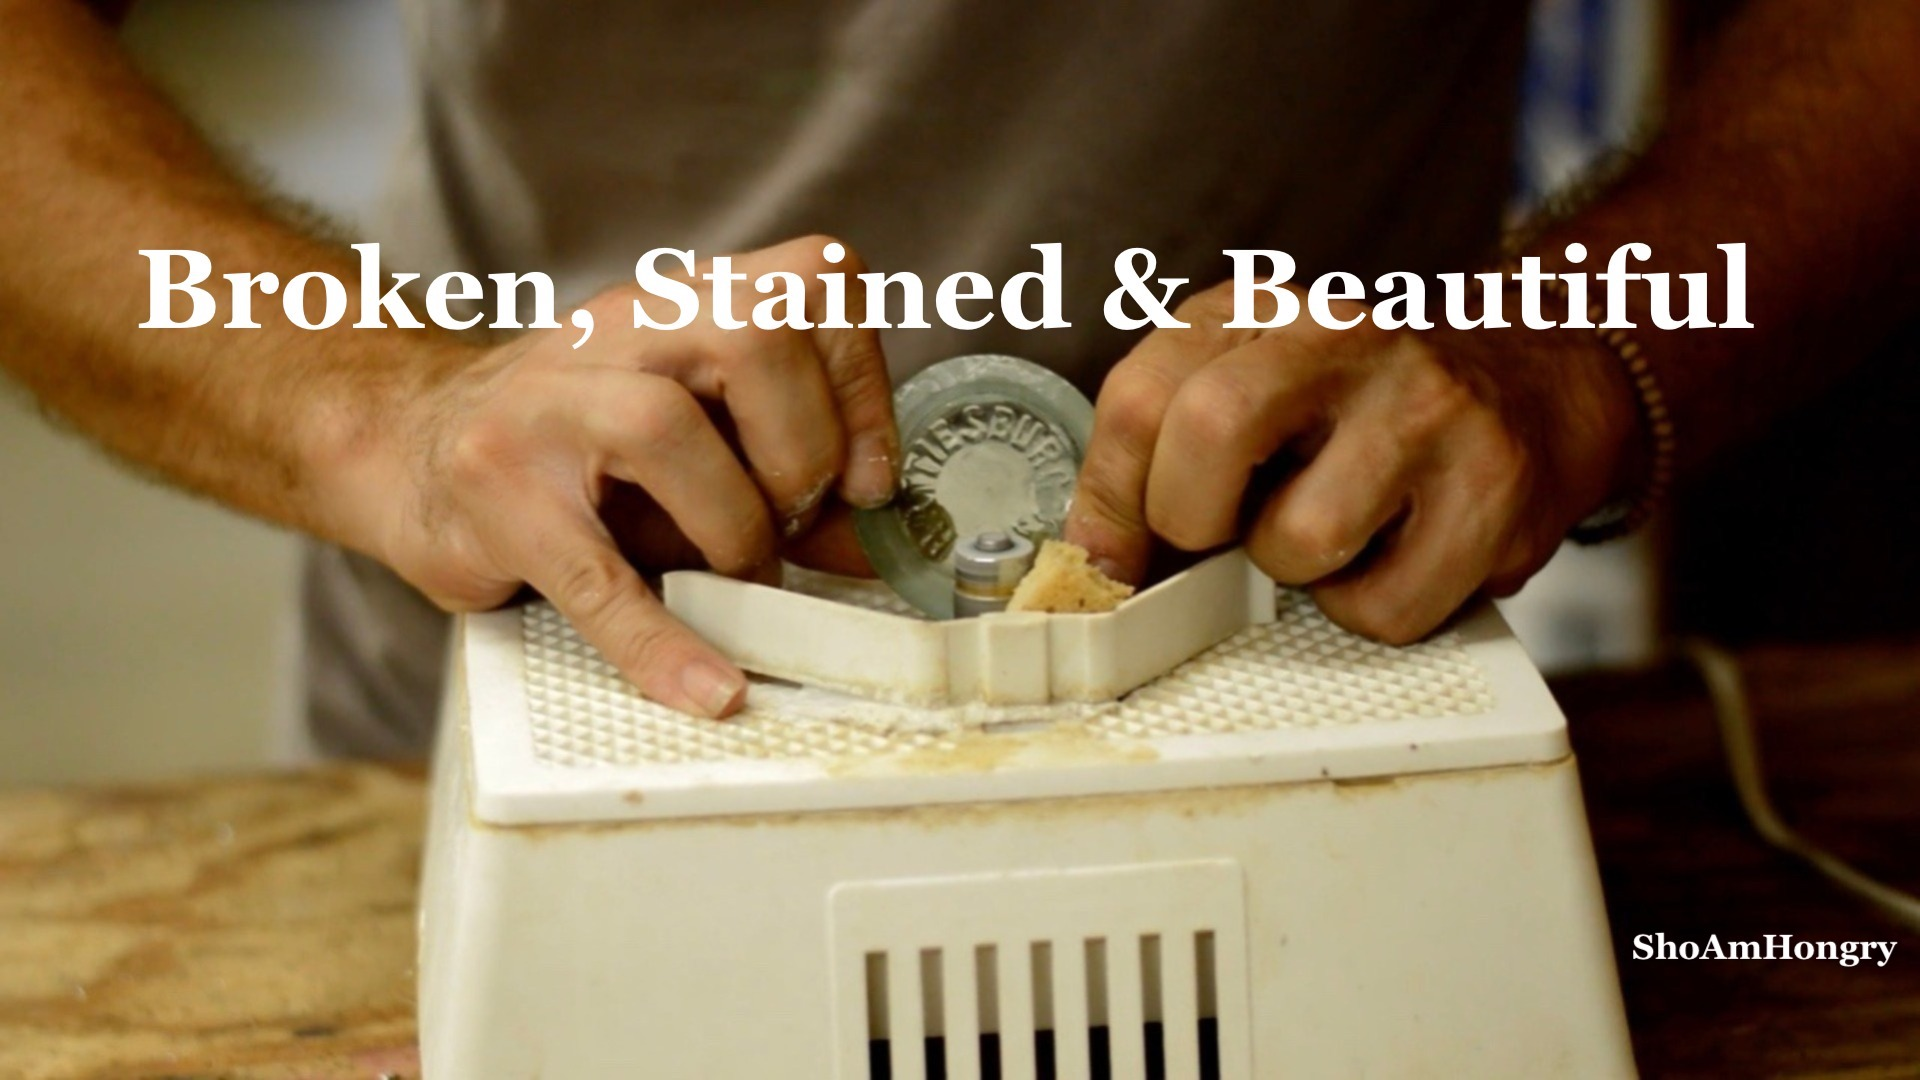 Broken, Stained & Beautiful